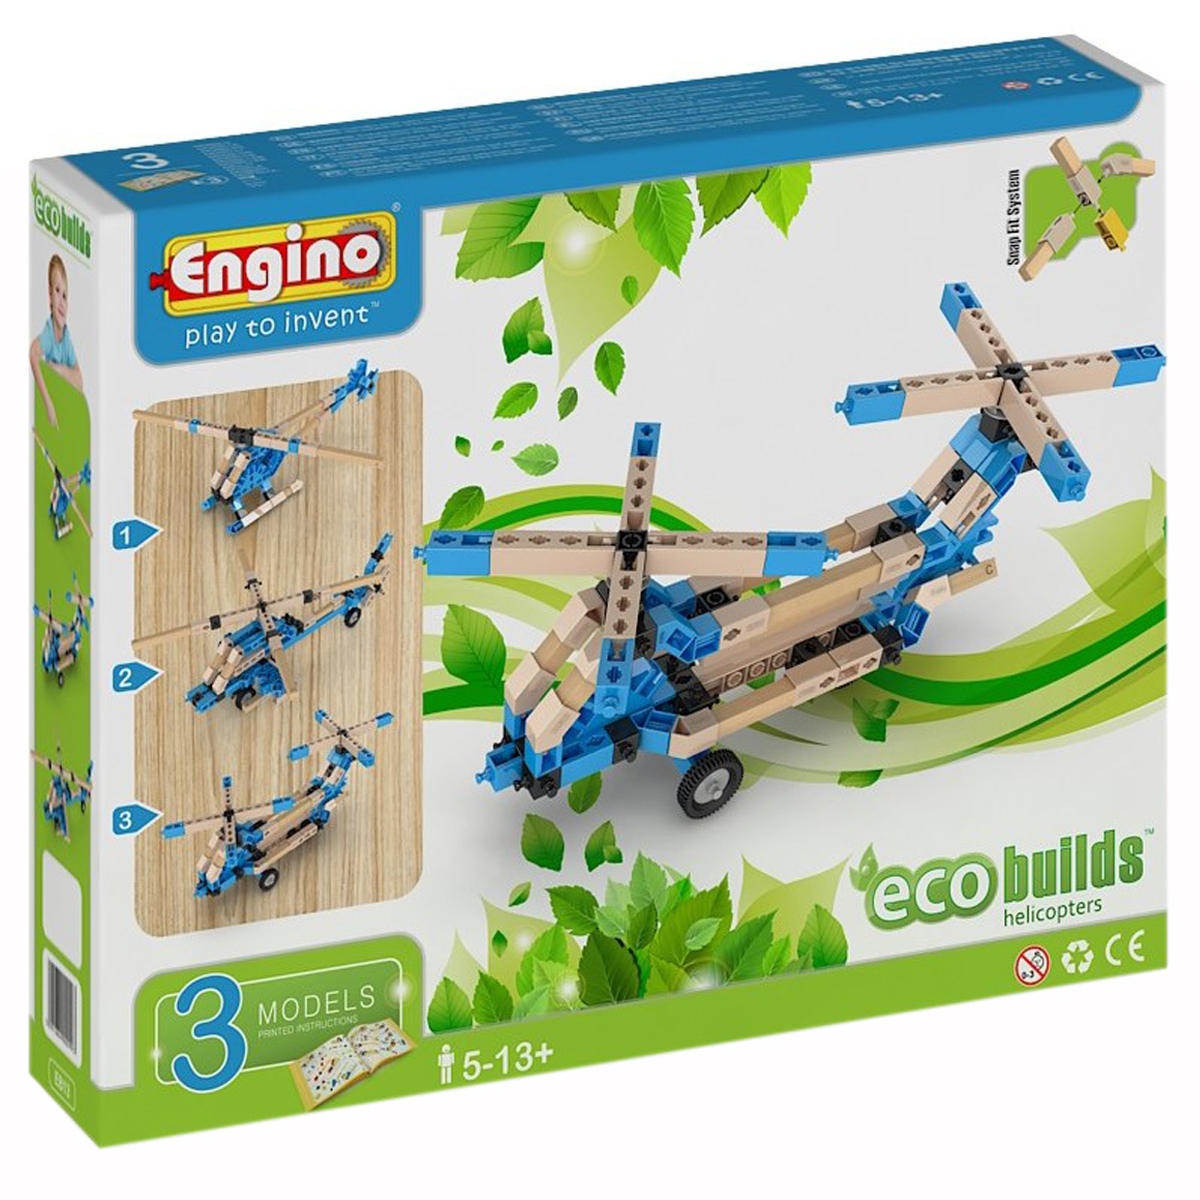 ECO HELICOPTER 3 MODELS